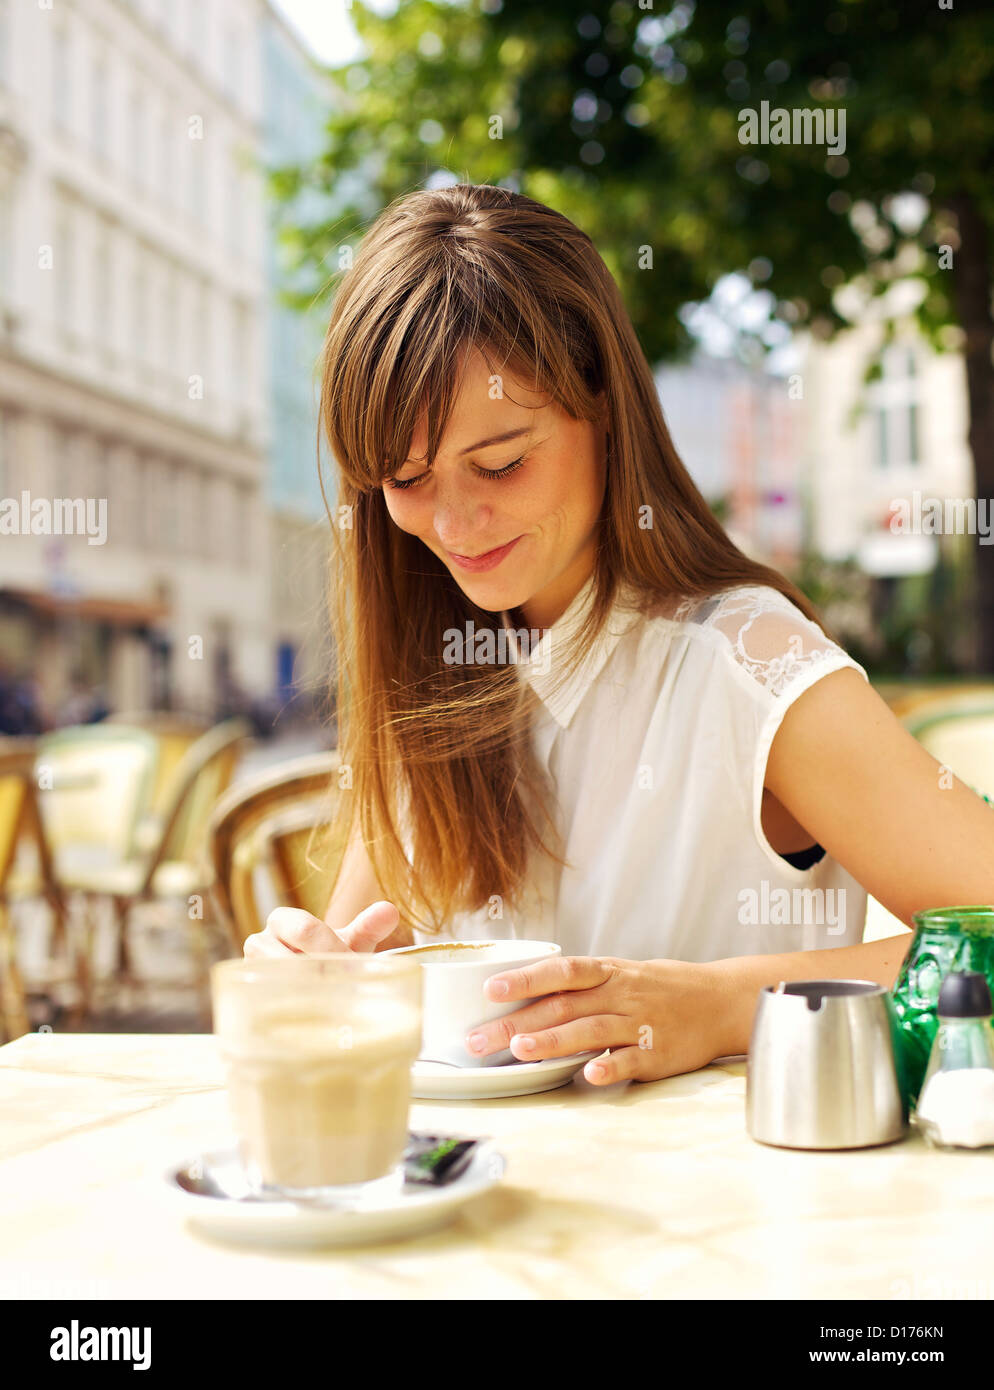 Smiling woman enjoying her espresso in an outdoor coffee shop - Stock Image